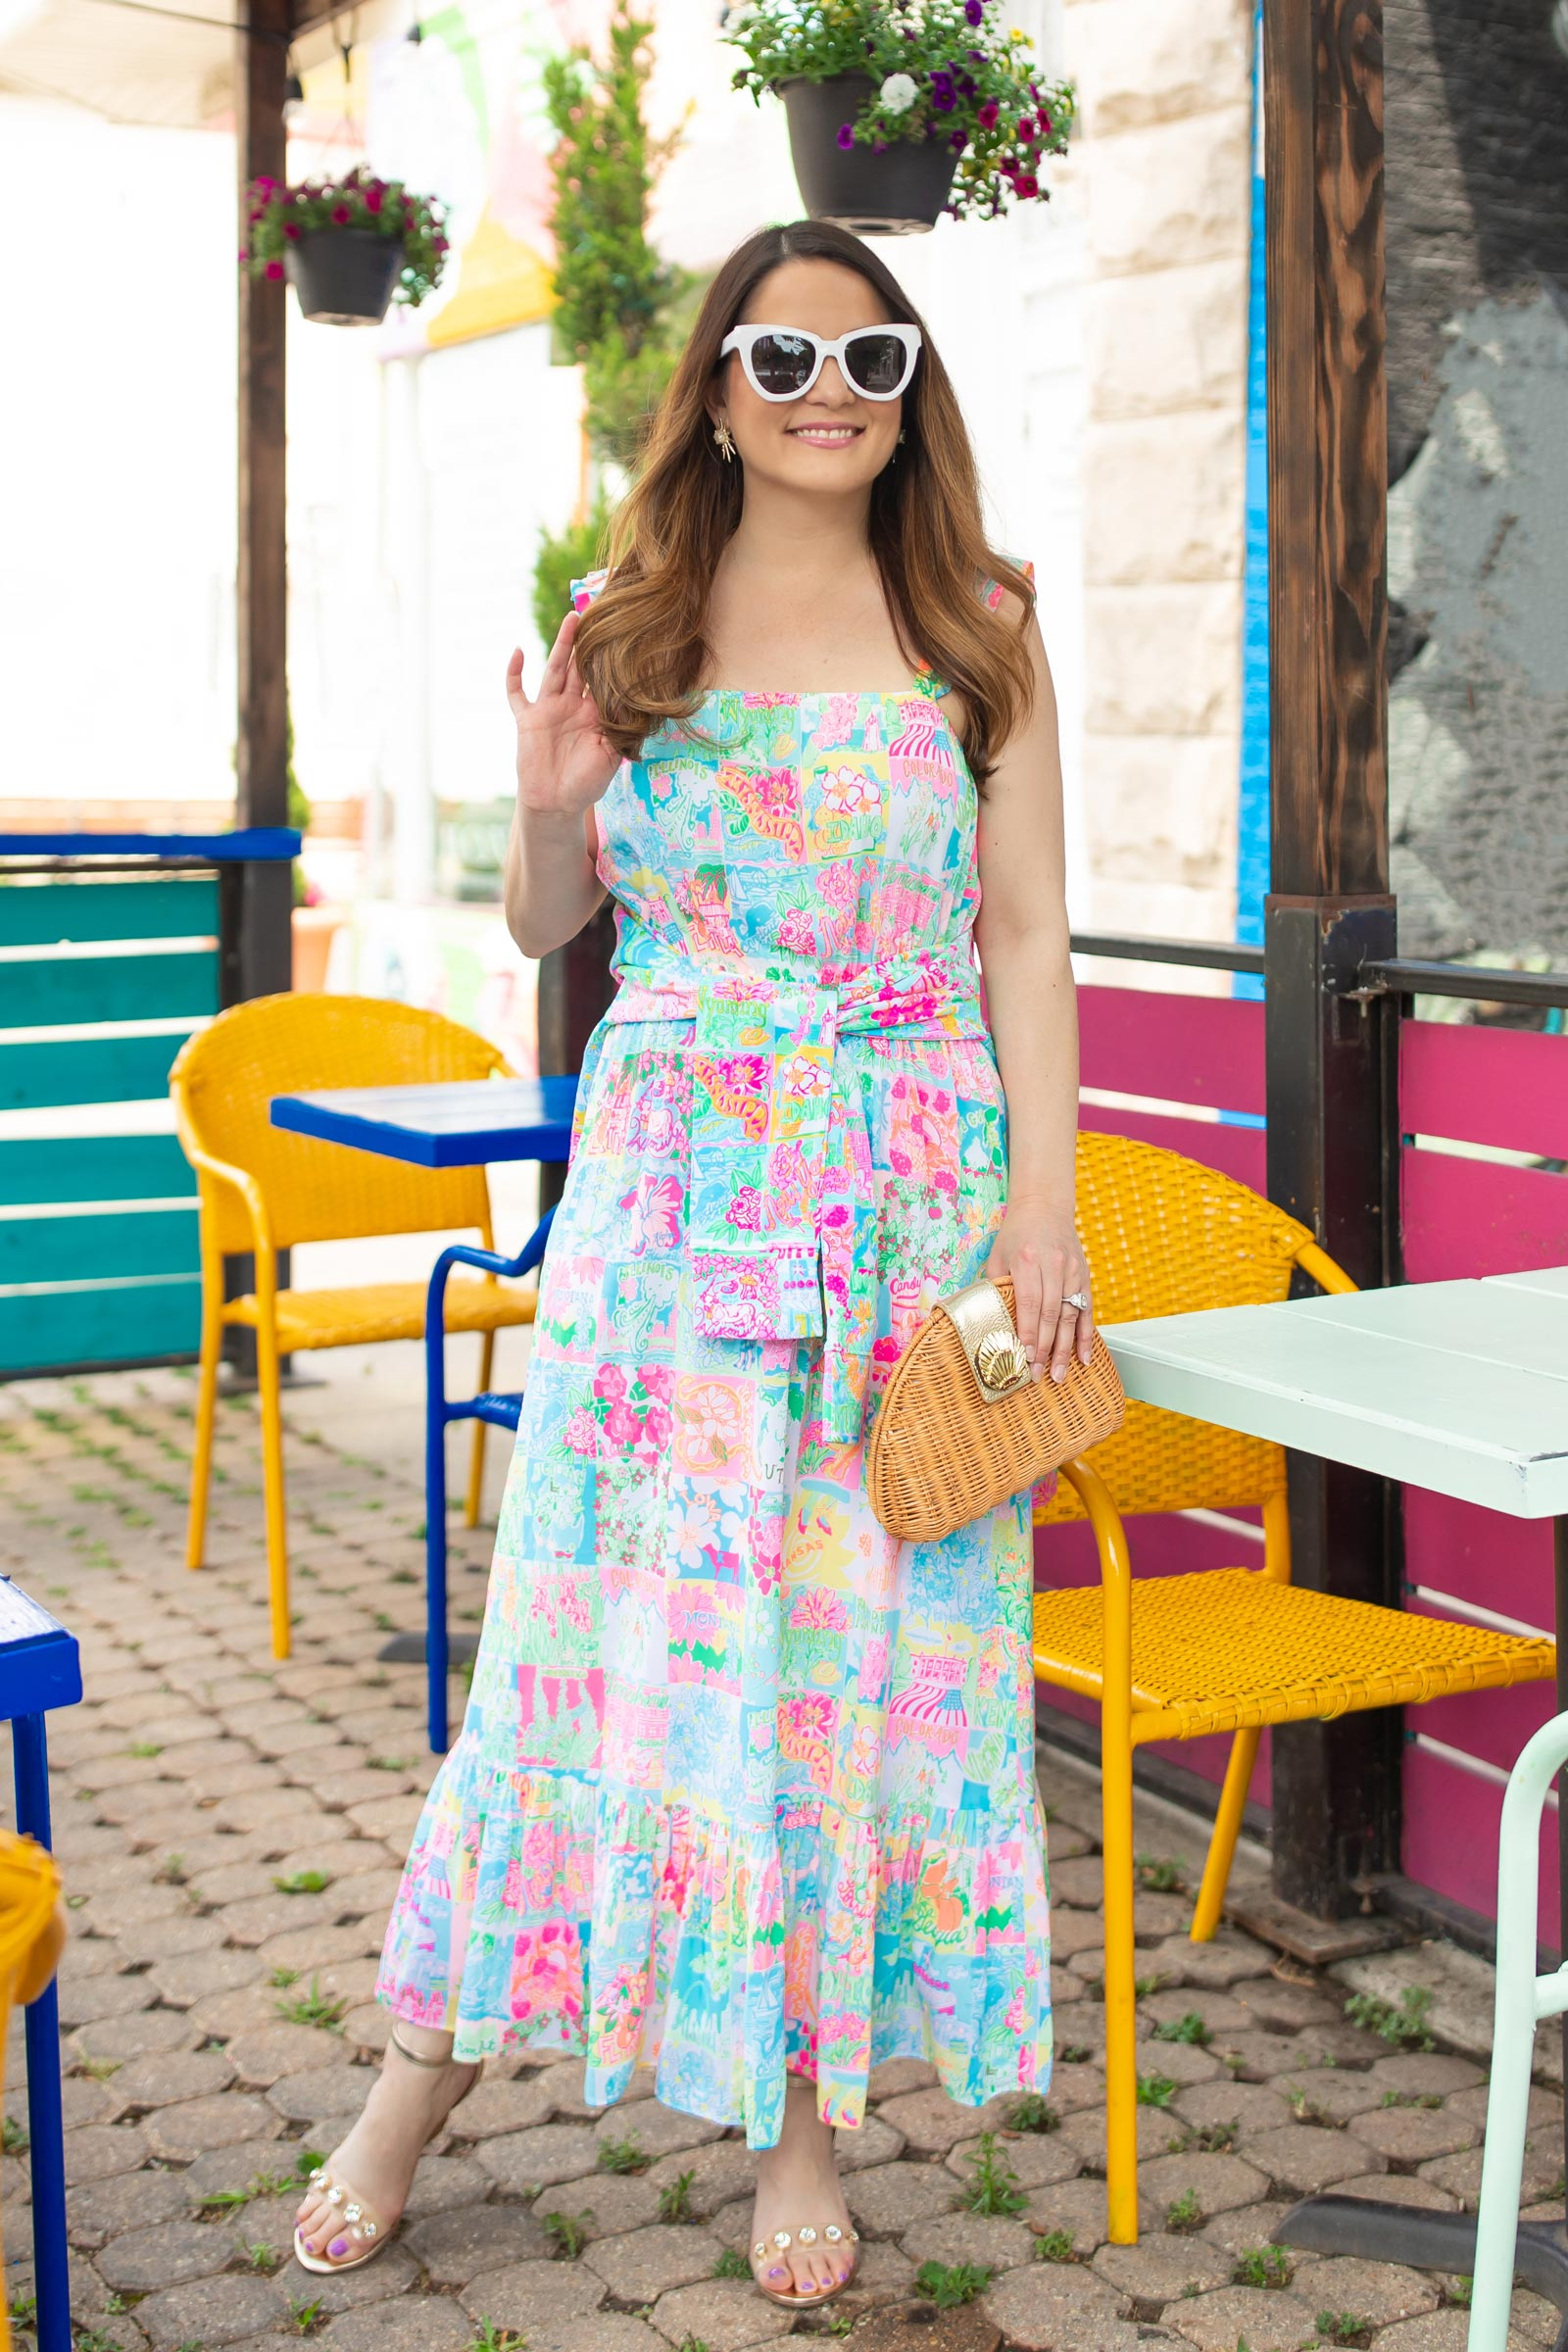 Jennifer Lake Lilly Pulitzer Midi Dress